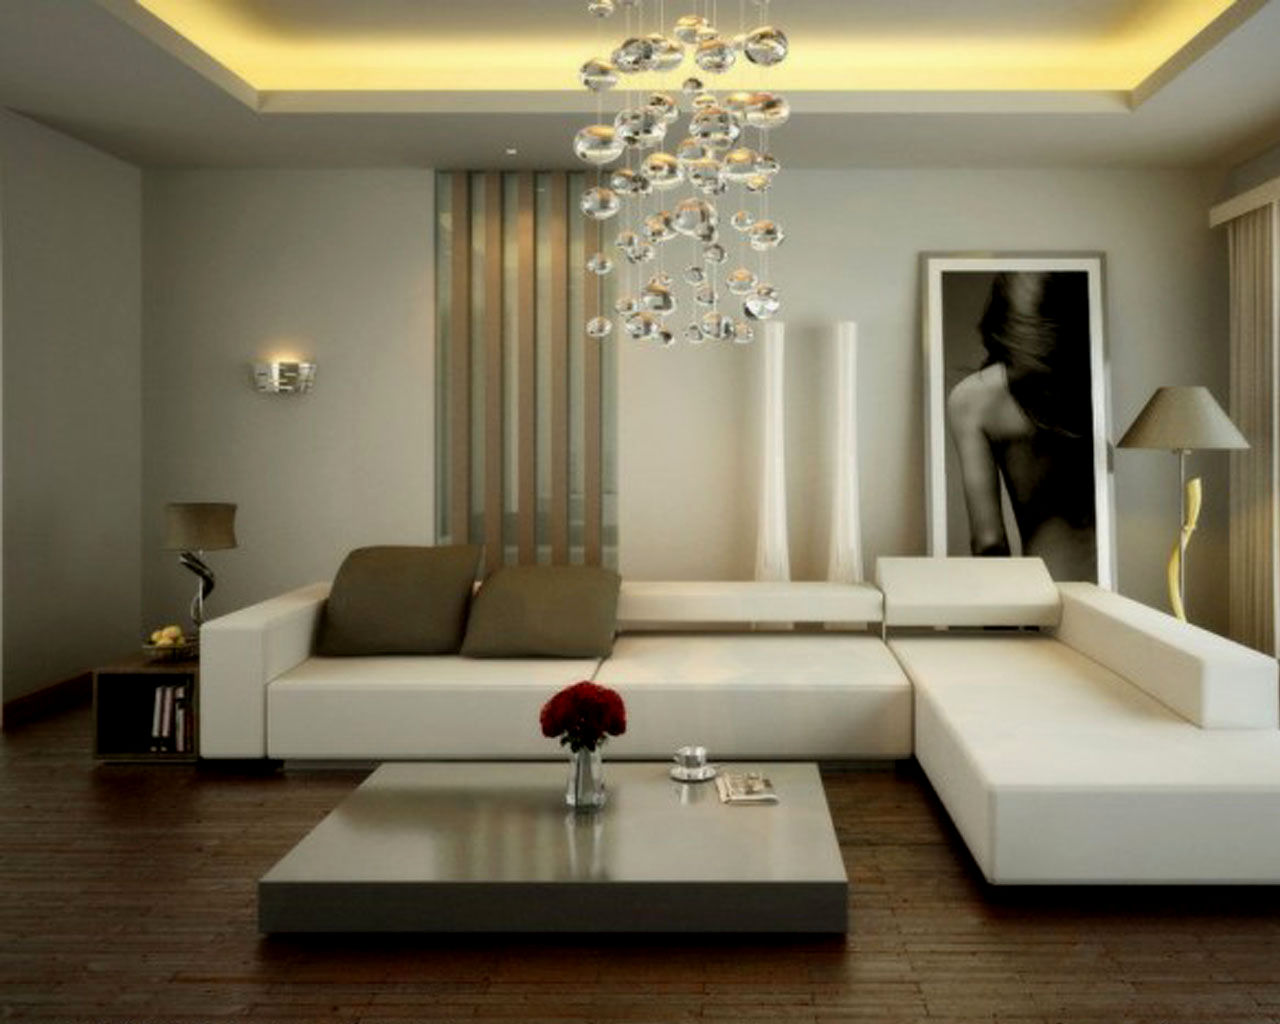 luxury modular sectional sofa layout-Stunning Modular Sectional sofa Décor